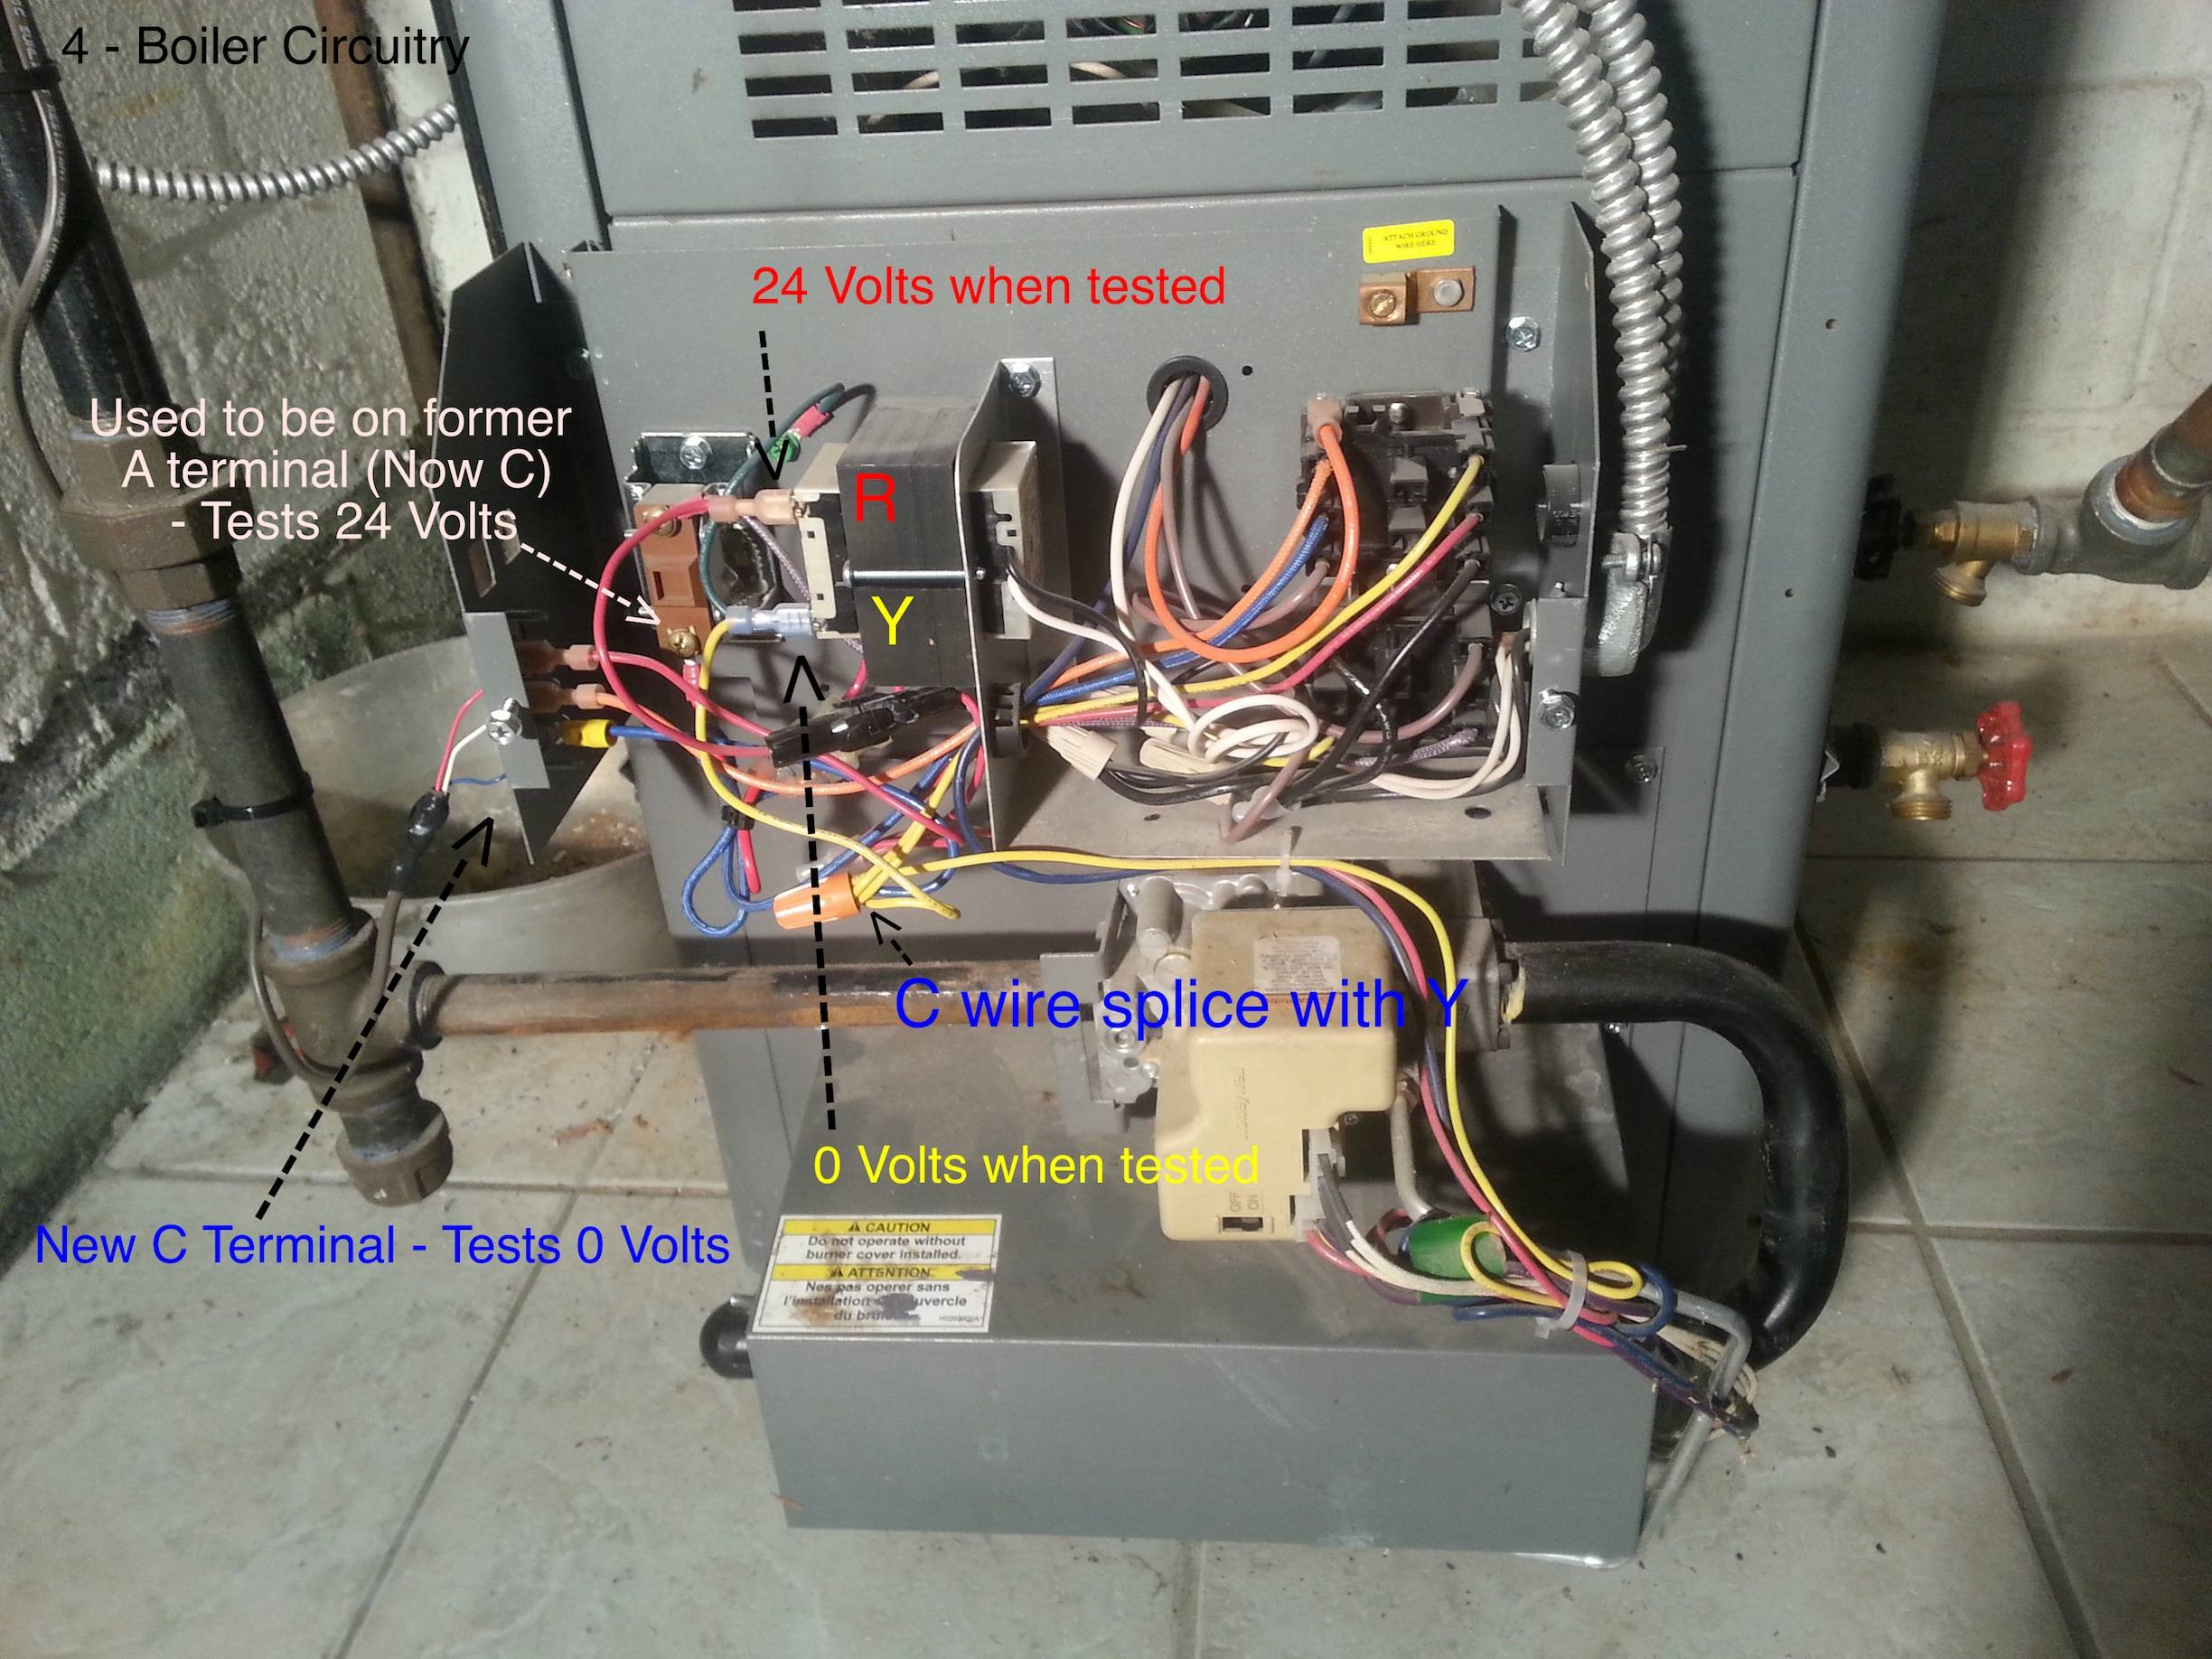 hvac transformer wiring diagram thermistor boiler - where do i connect my c wire from thermostat when there are two transformers? home ...